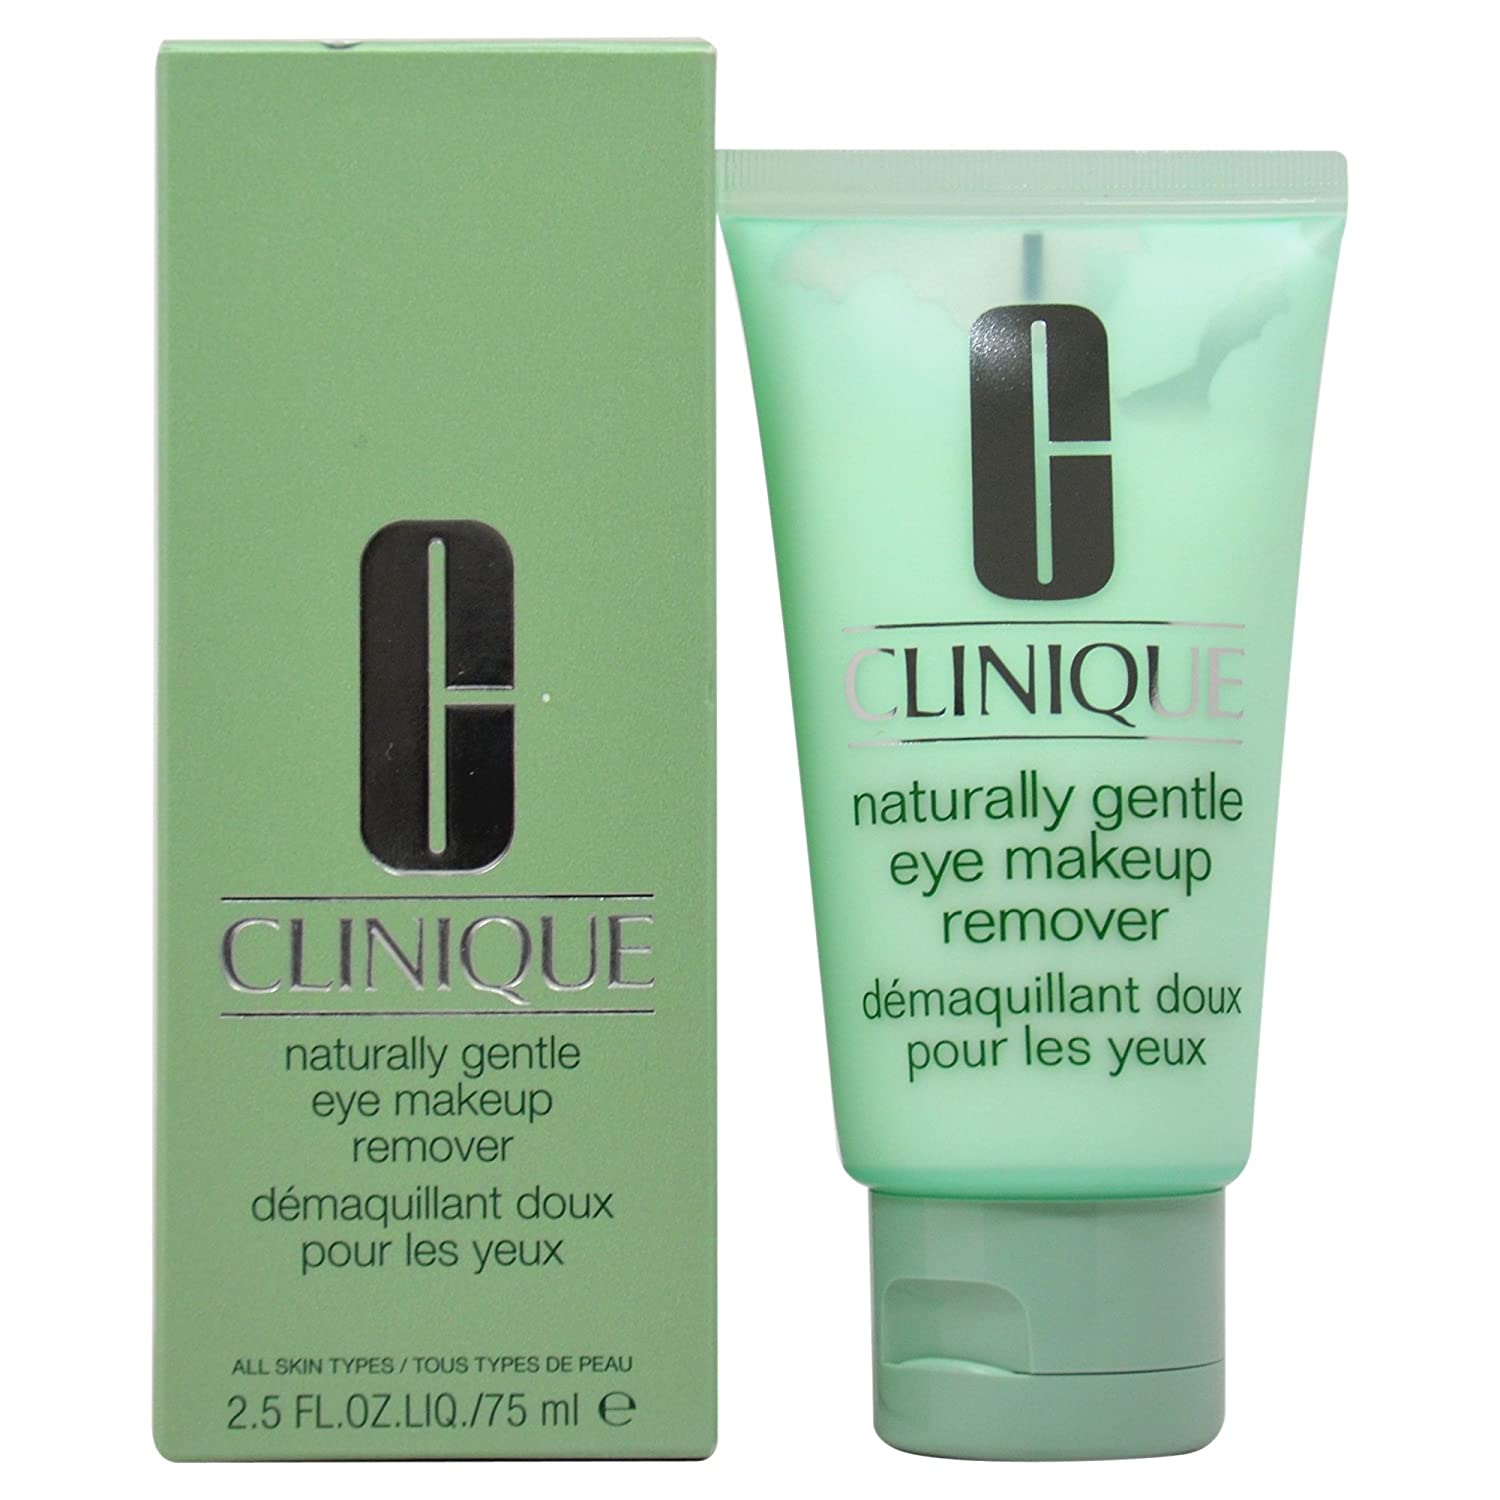 Clinique 22502 Struccante CLICOSC7368F301 68F3010000_-75ml